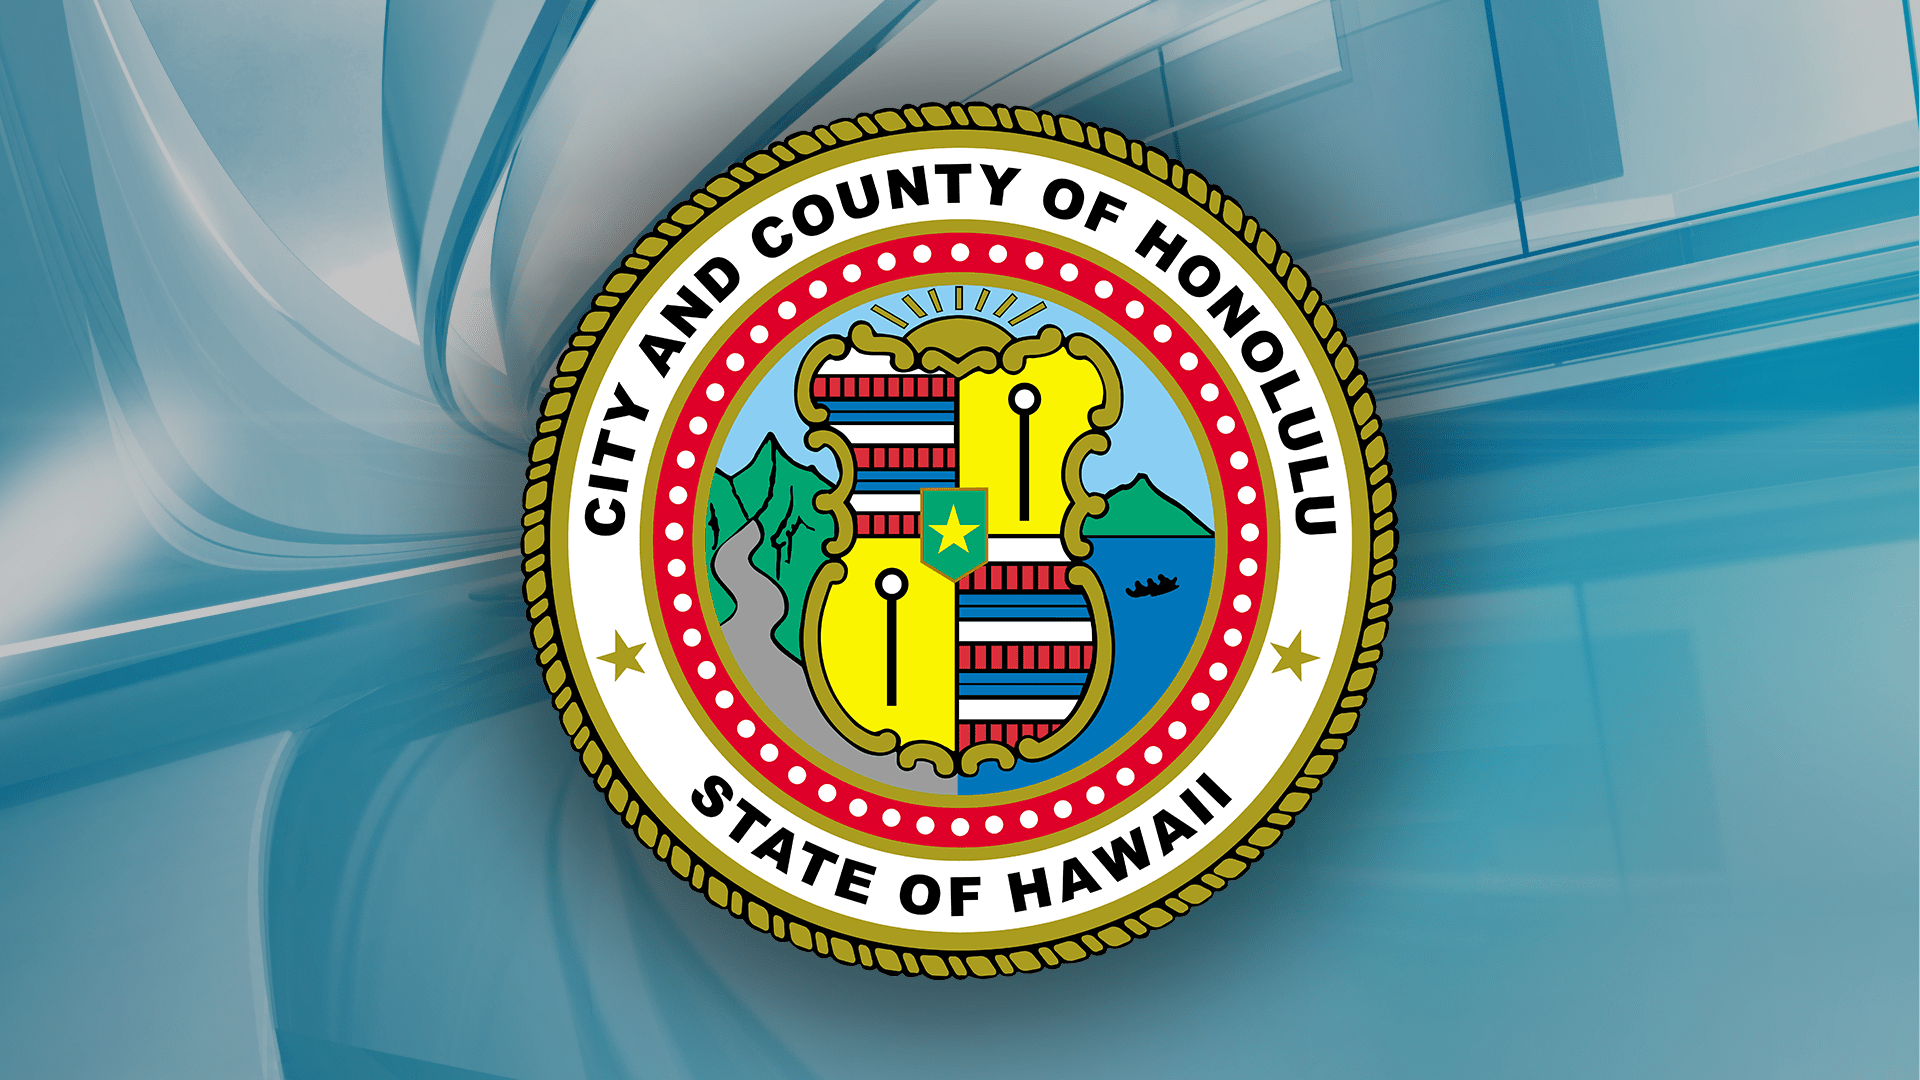 City and County of Honolulu Logo with KHON Background_1555806217299.png.jpg